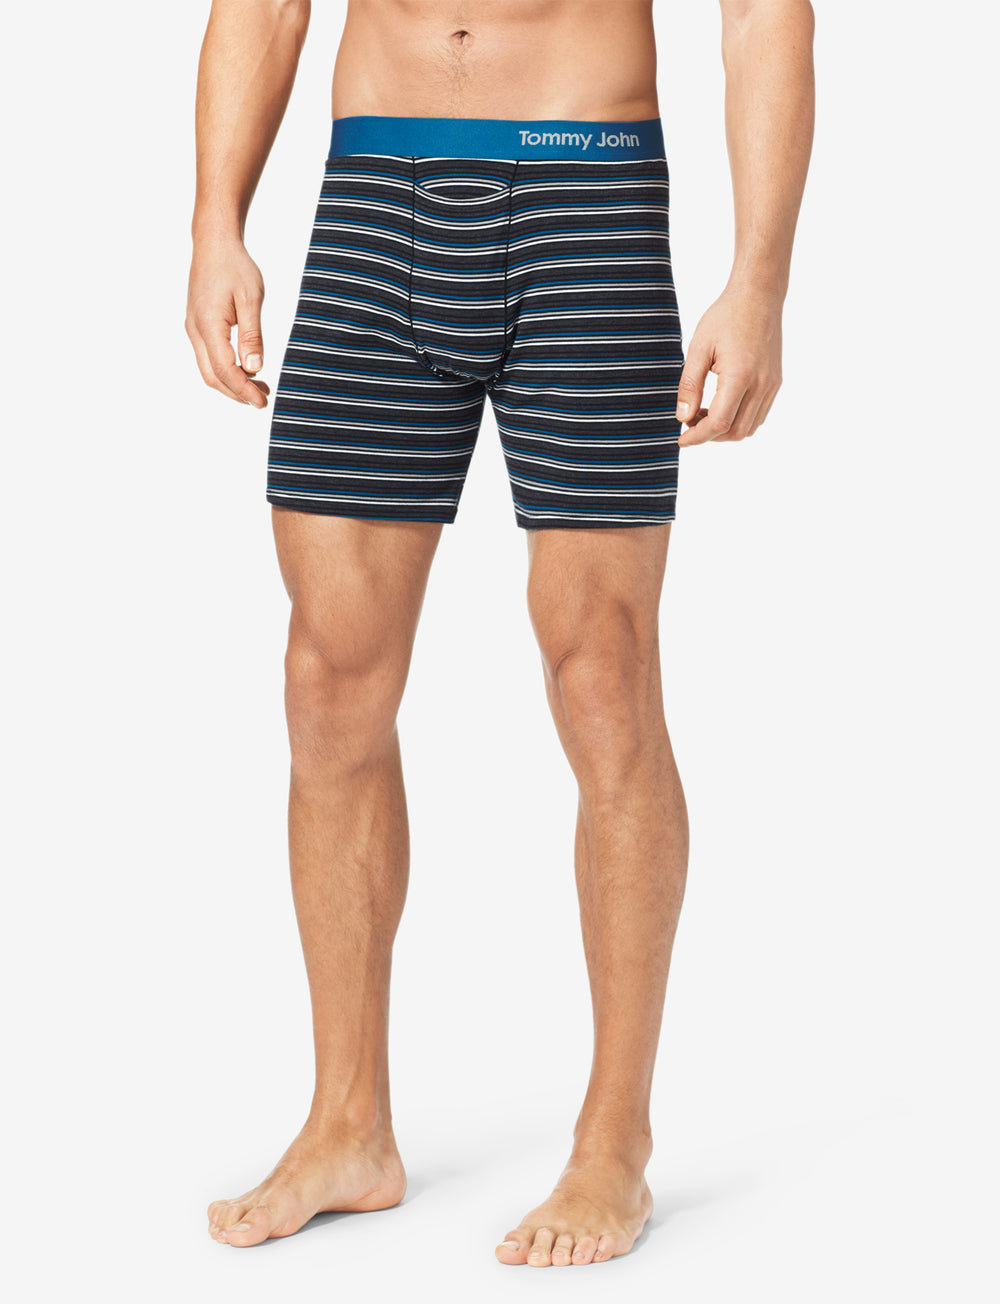 Cool Cotton Stripe Relaxed Fit Boxer Details Image